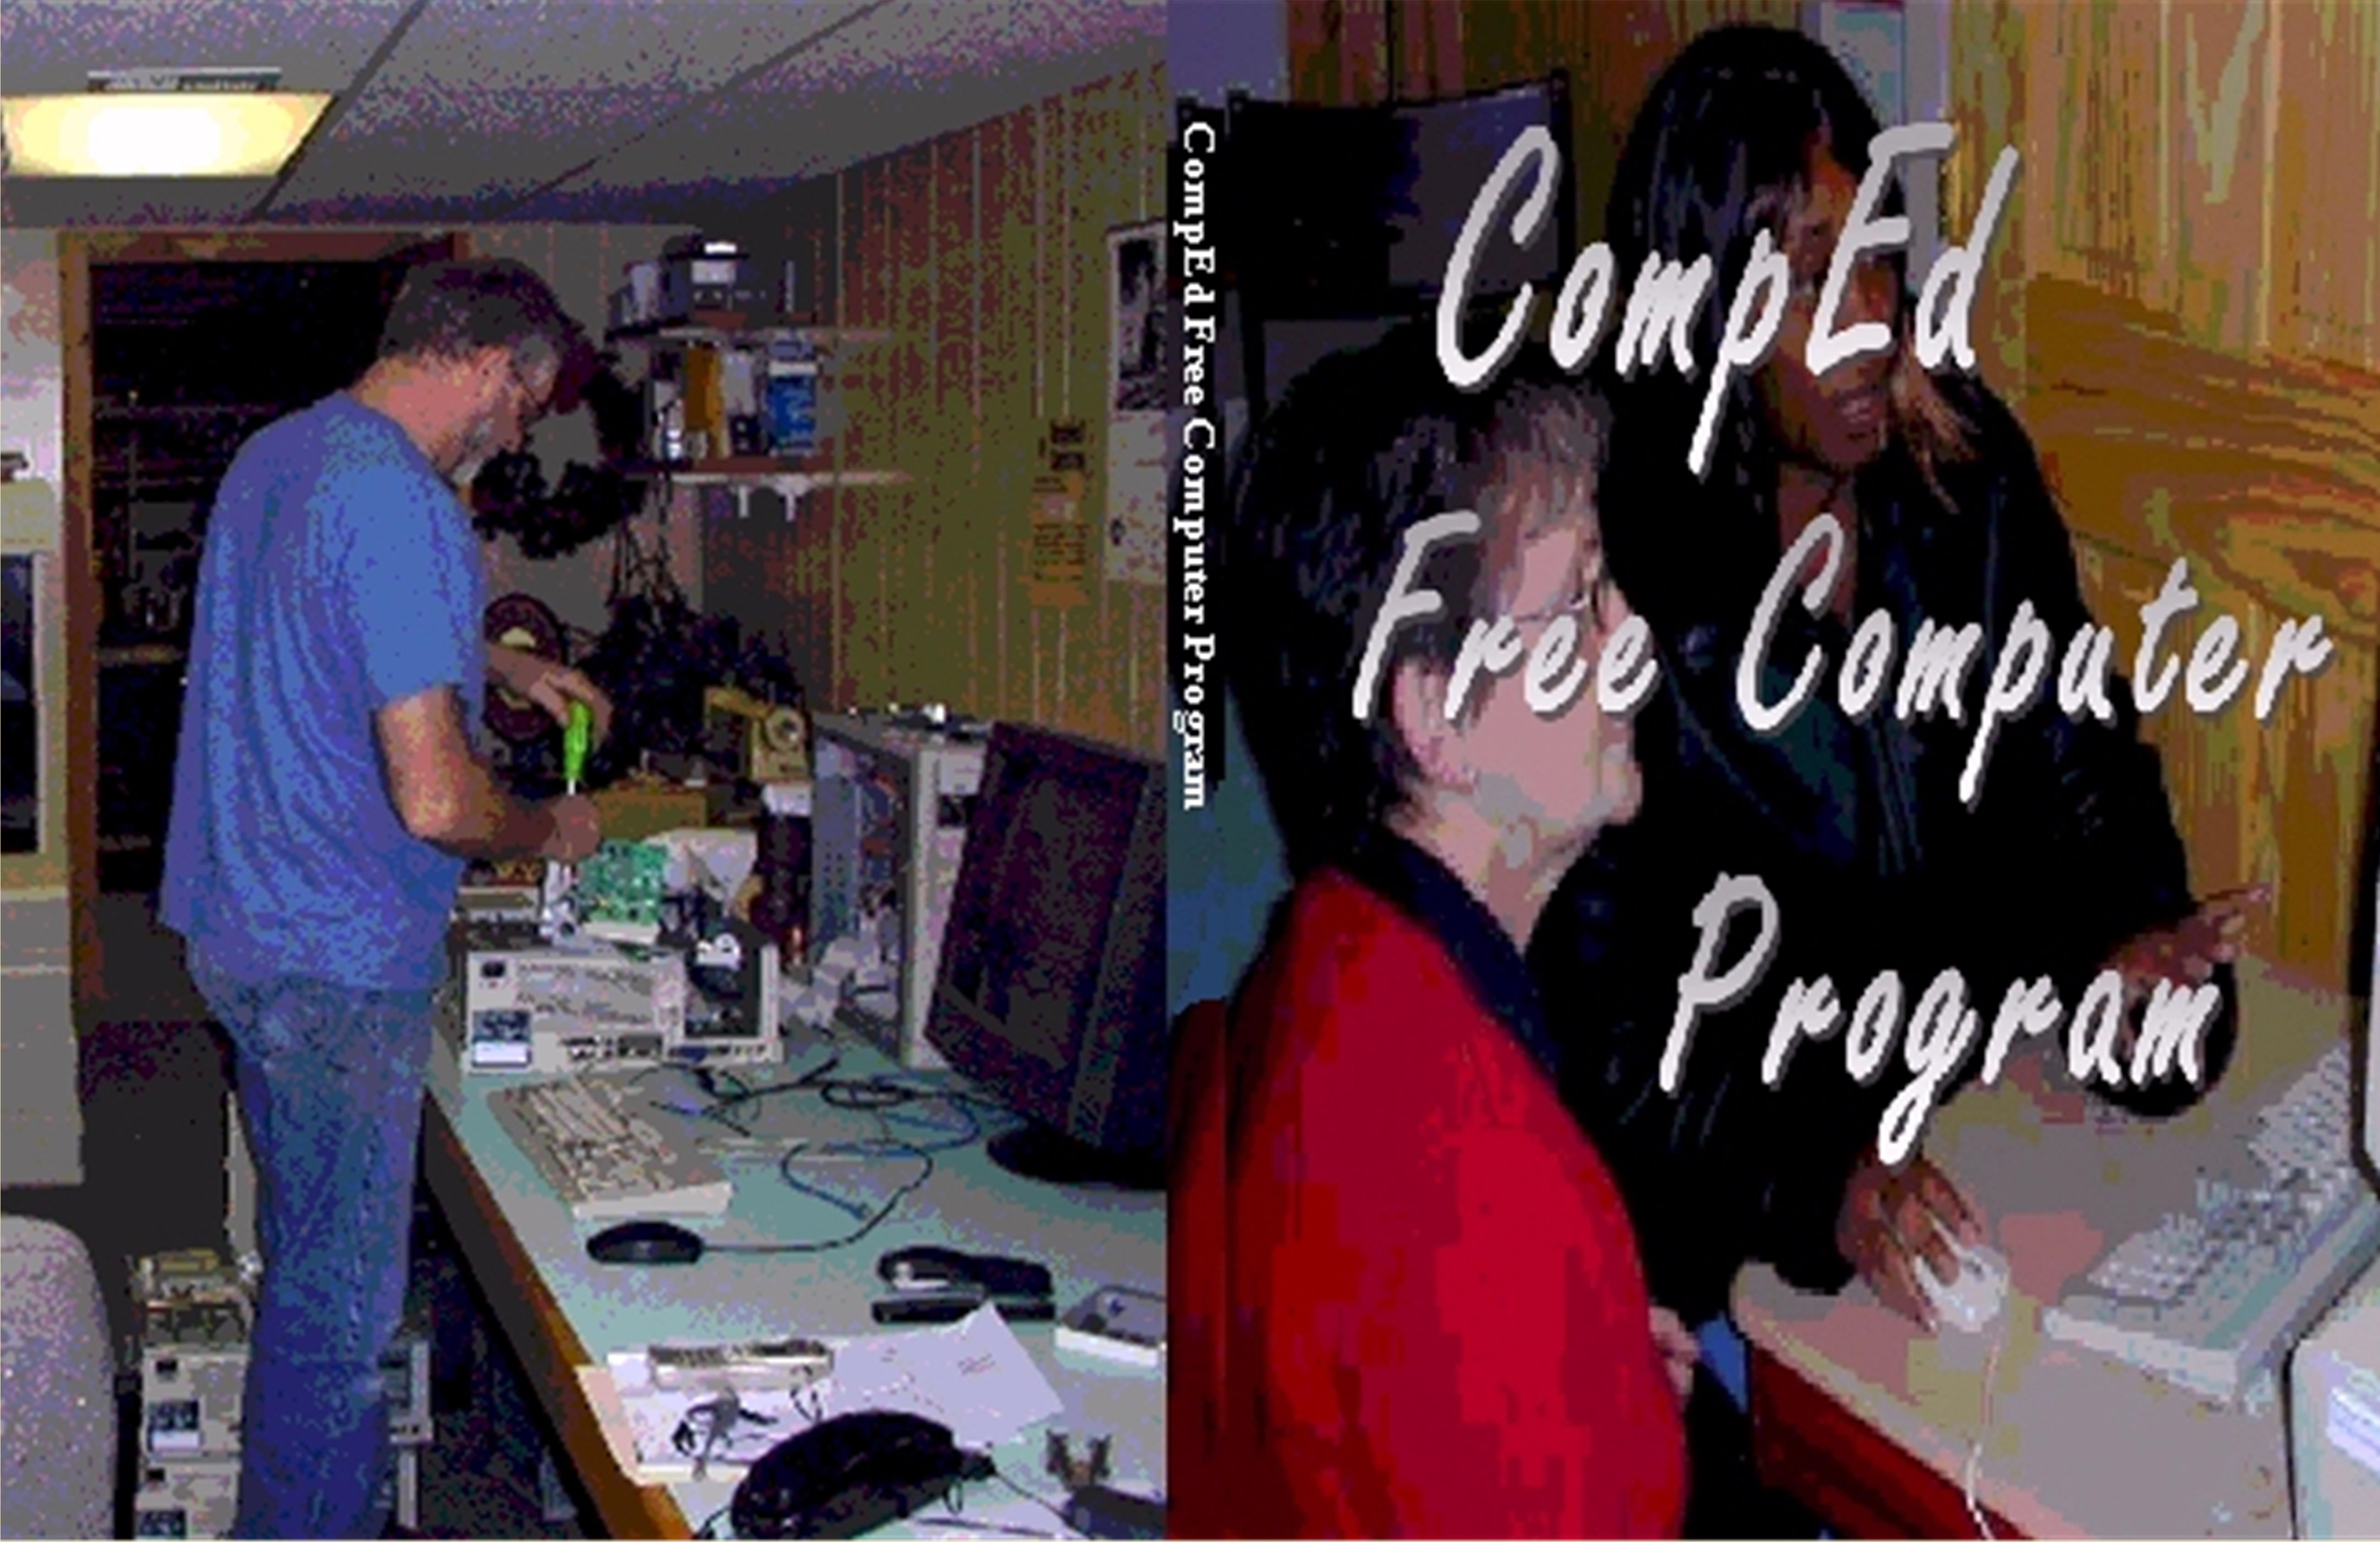 COMPED FREE COMPUTER PROGRAM cover image